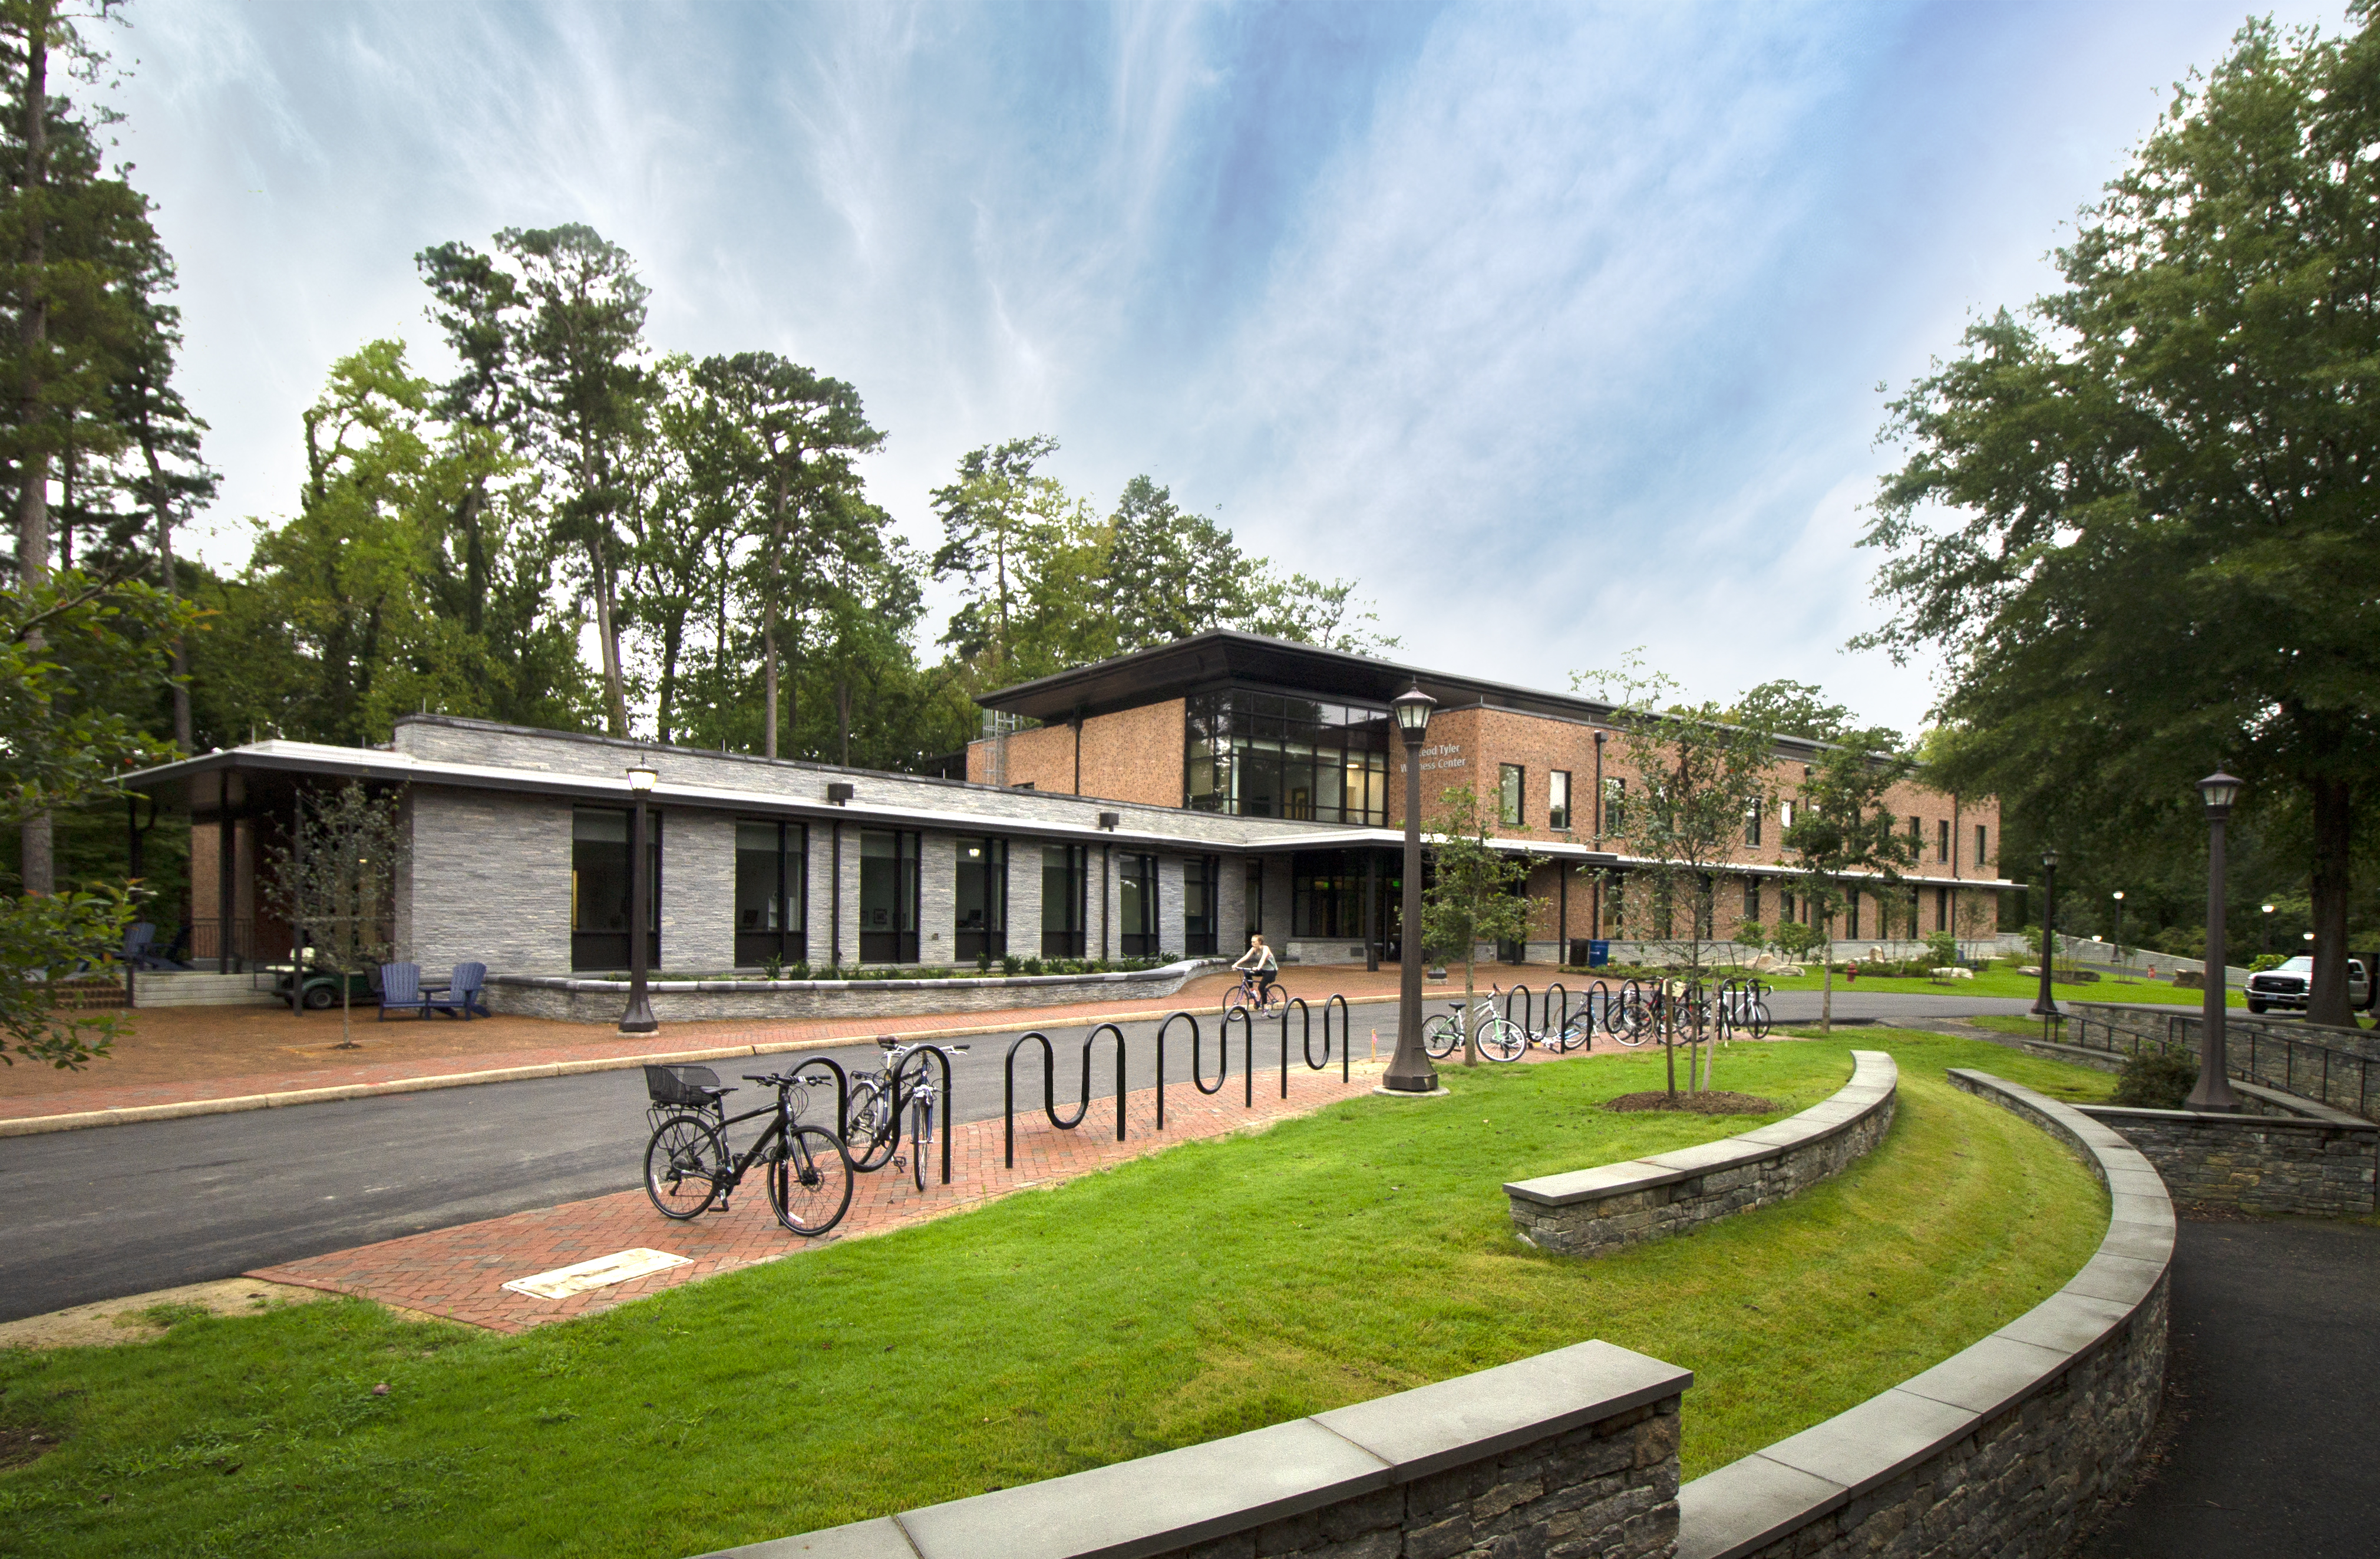 HENRY ADAMS provided the MEP engineering design for the integrated wellness center.